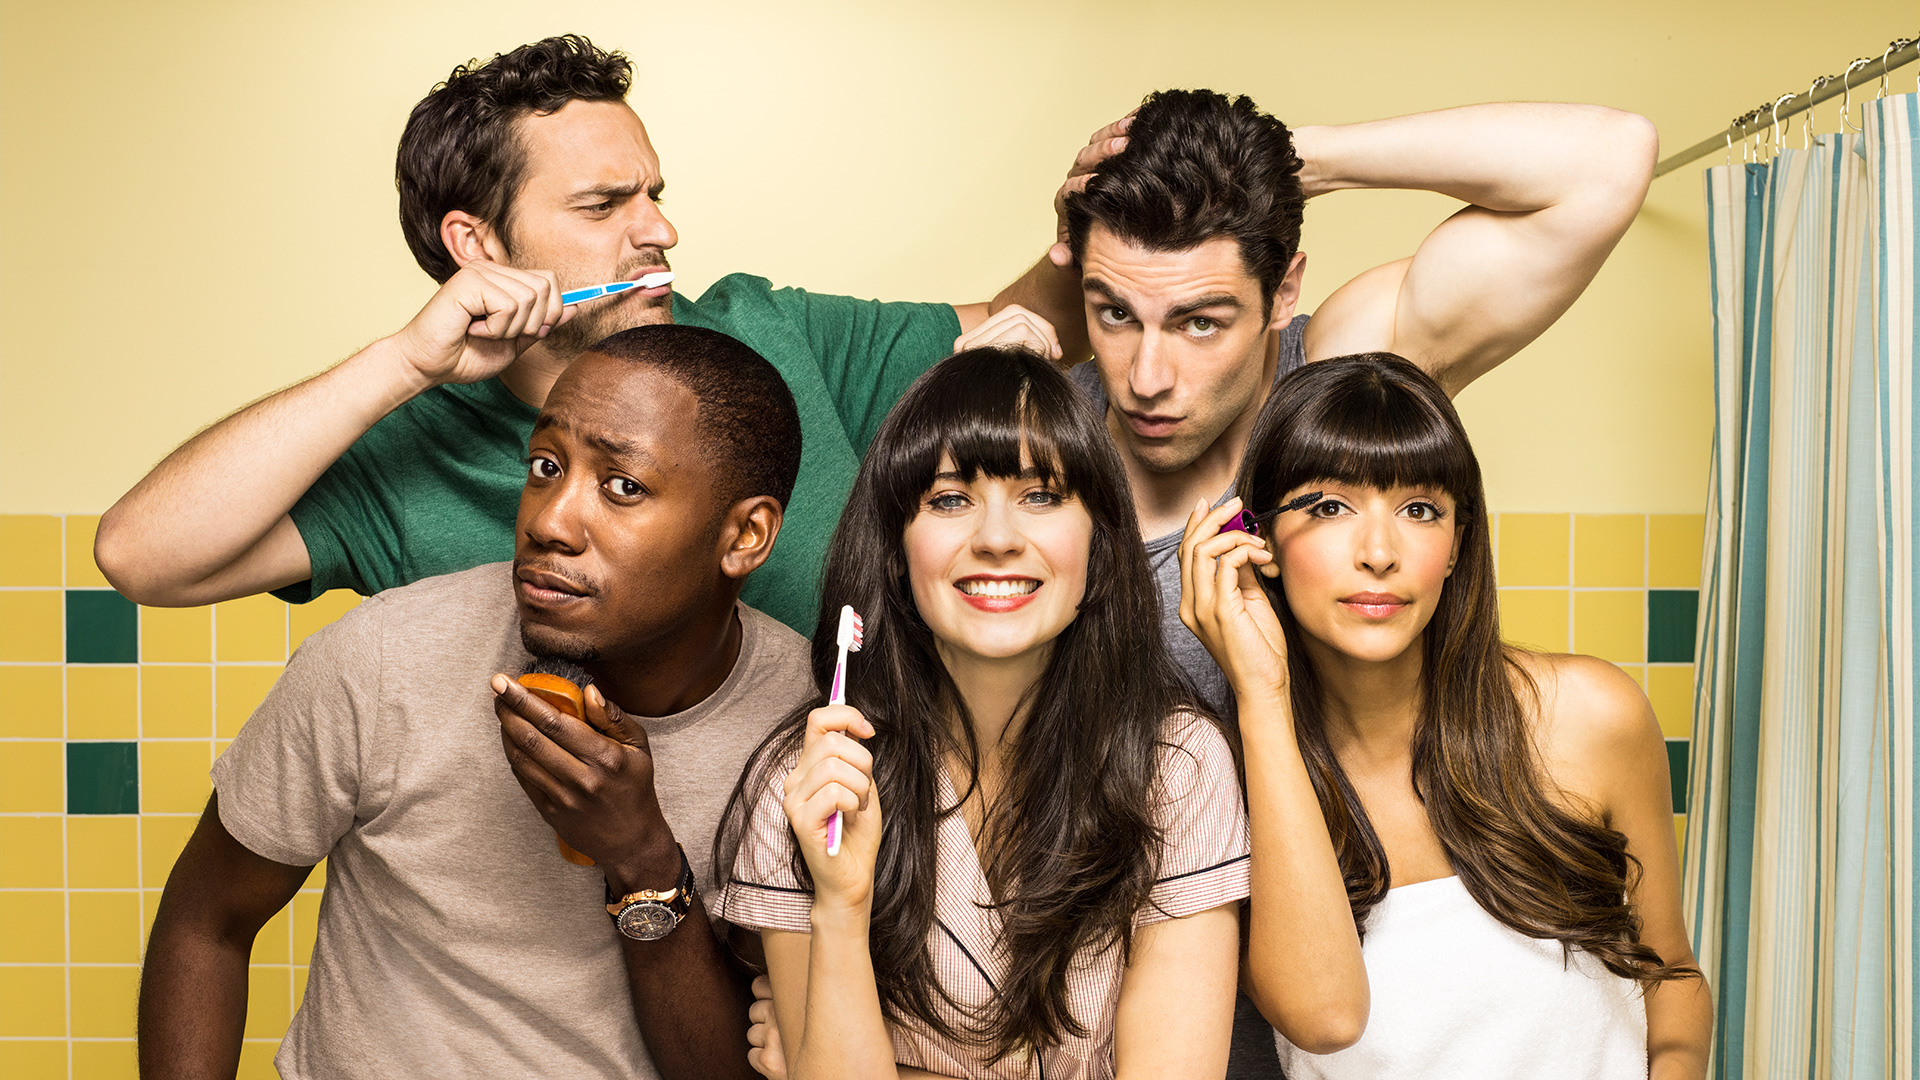 New GIrl - I wrote all of the live tweets and social posts for Seasons 3 + 4.